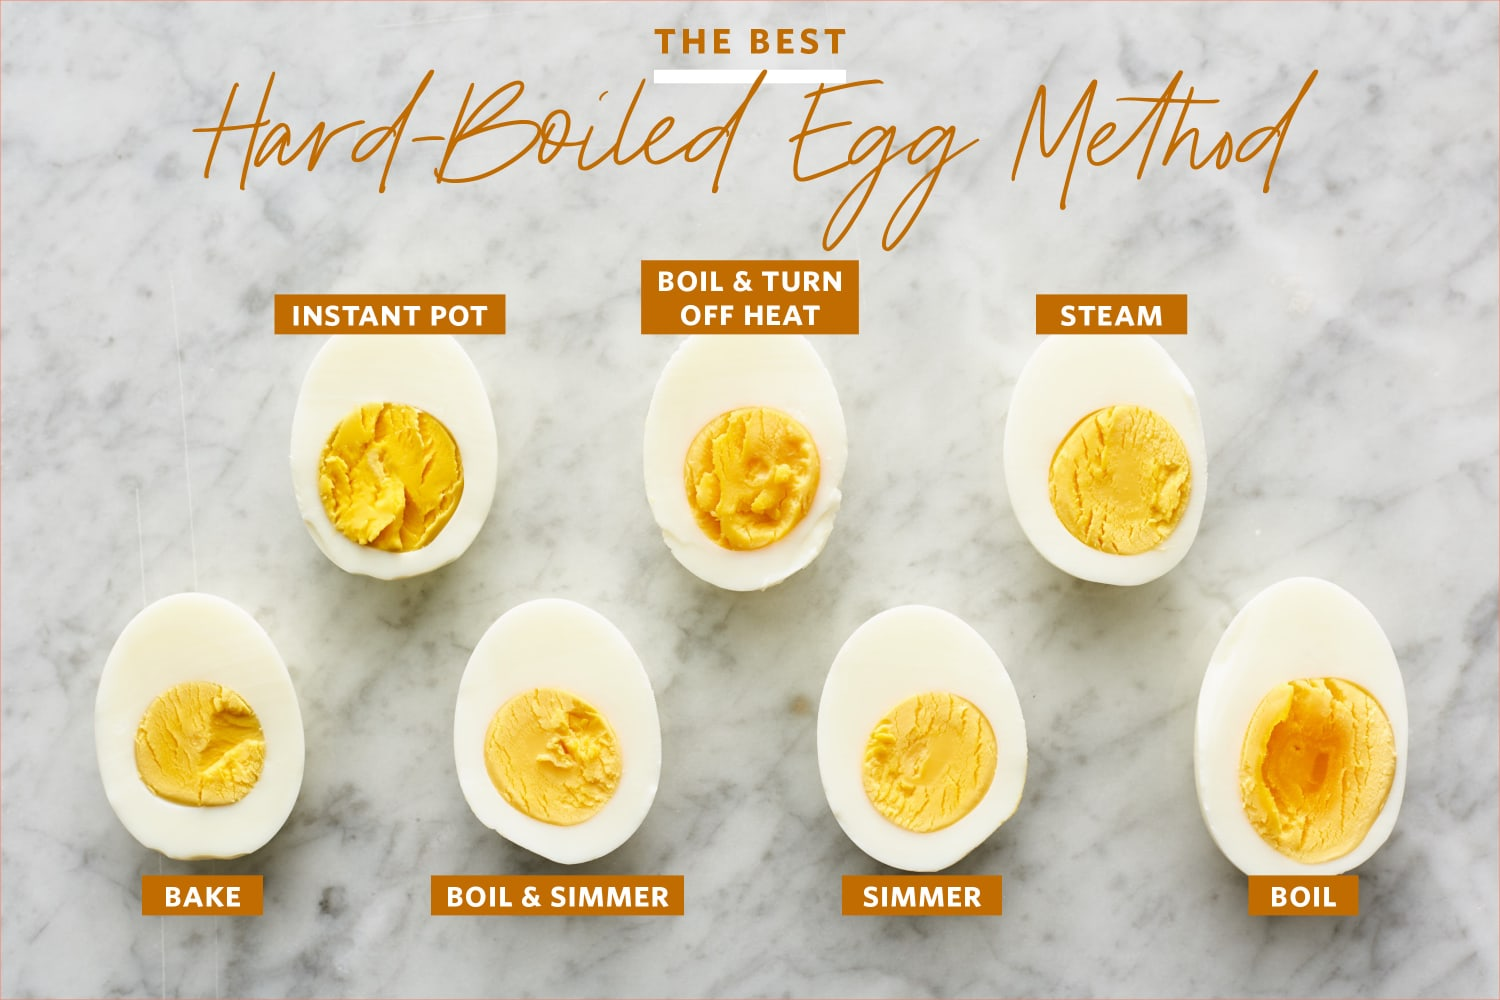 We Tested the Best Ways to Cook Bacon, Eggs, Potatoes and More: Here Are the Clear Winners